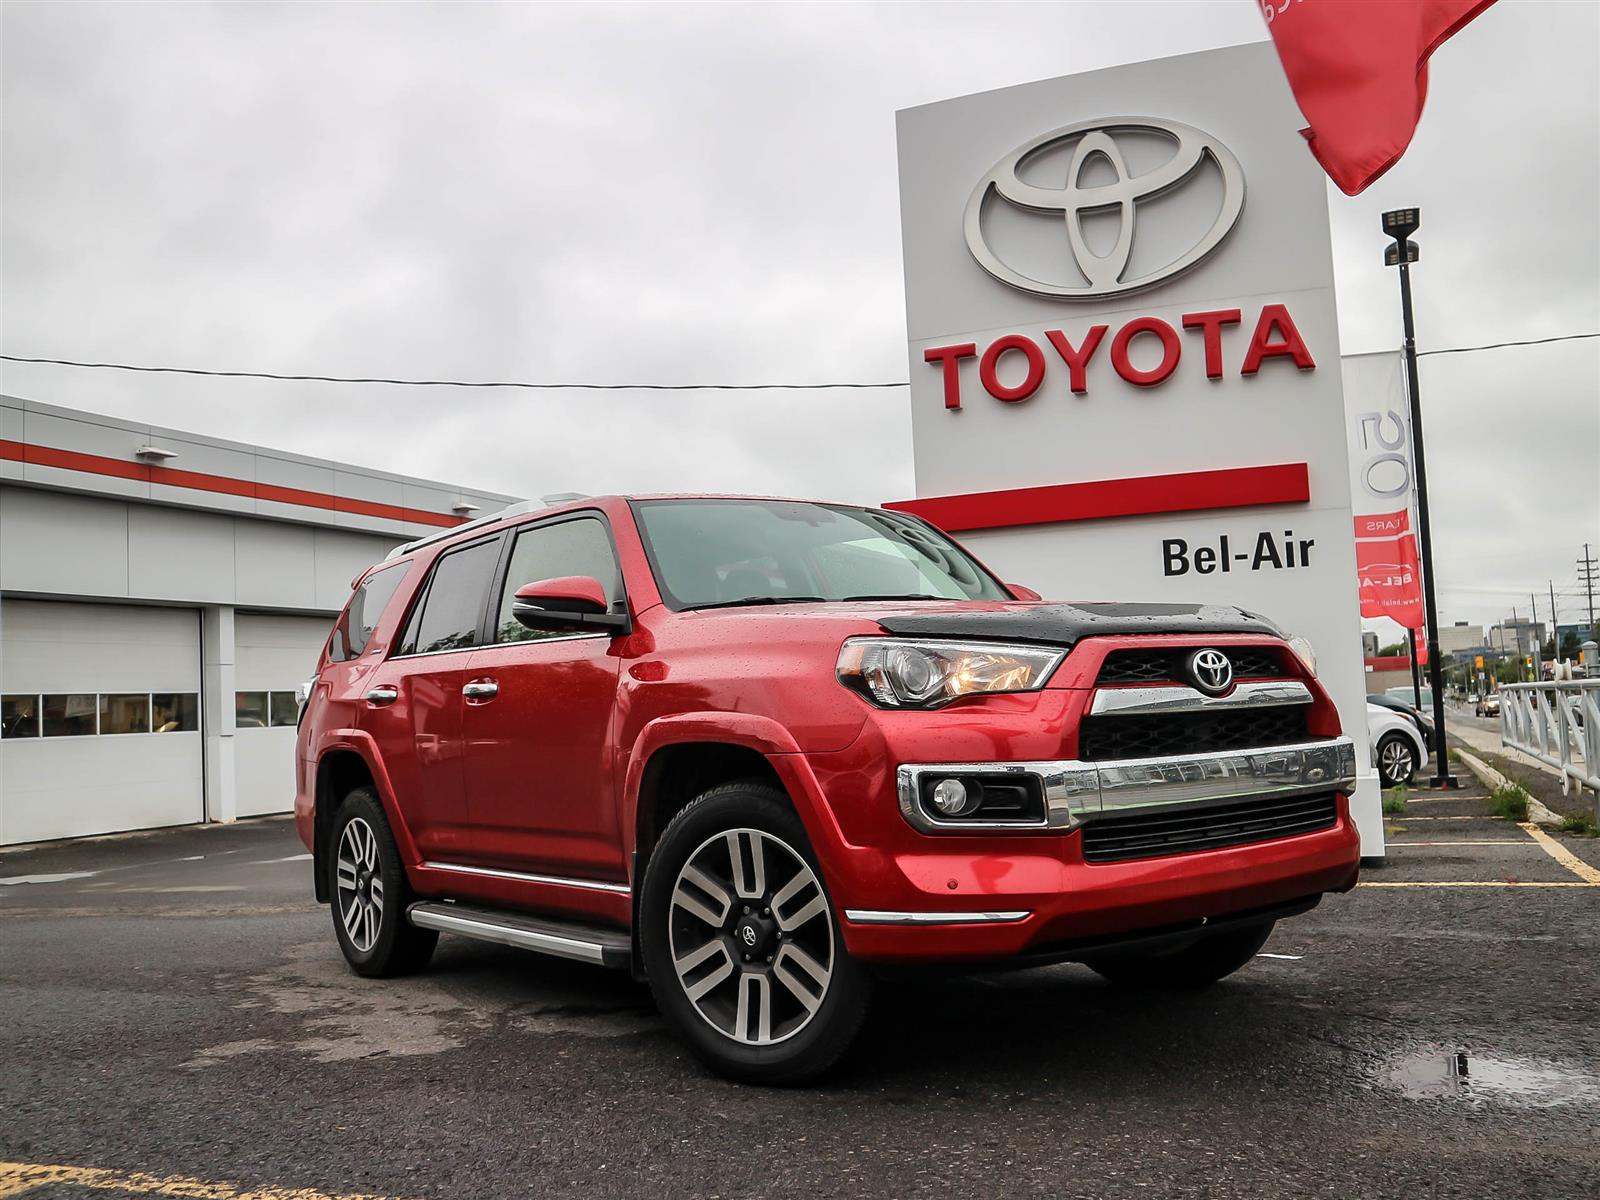 2018 Toyota 4Runner at Bel-Air Toyota